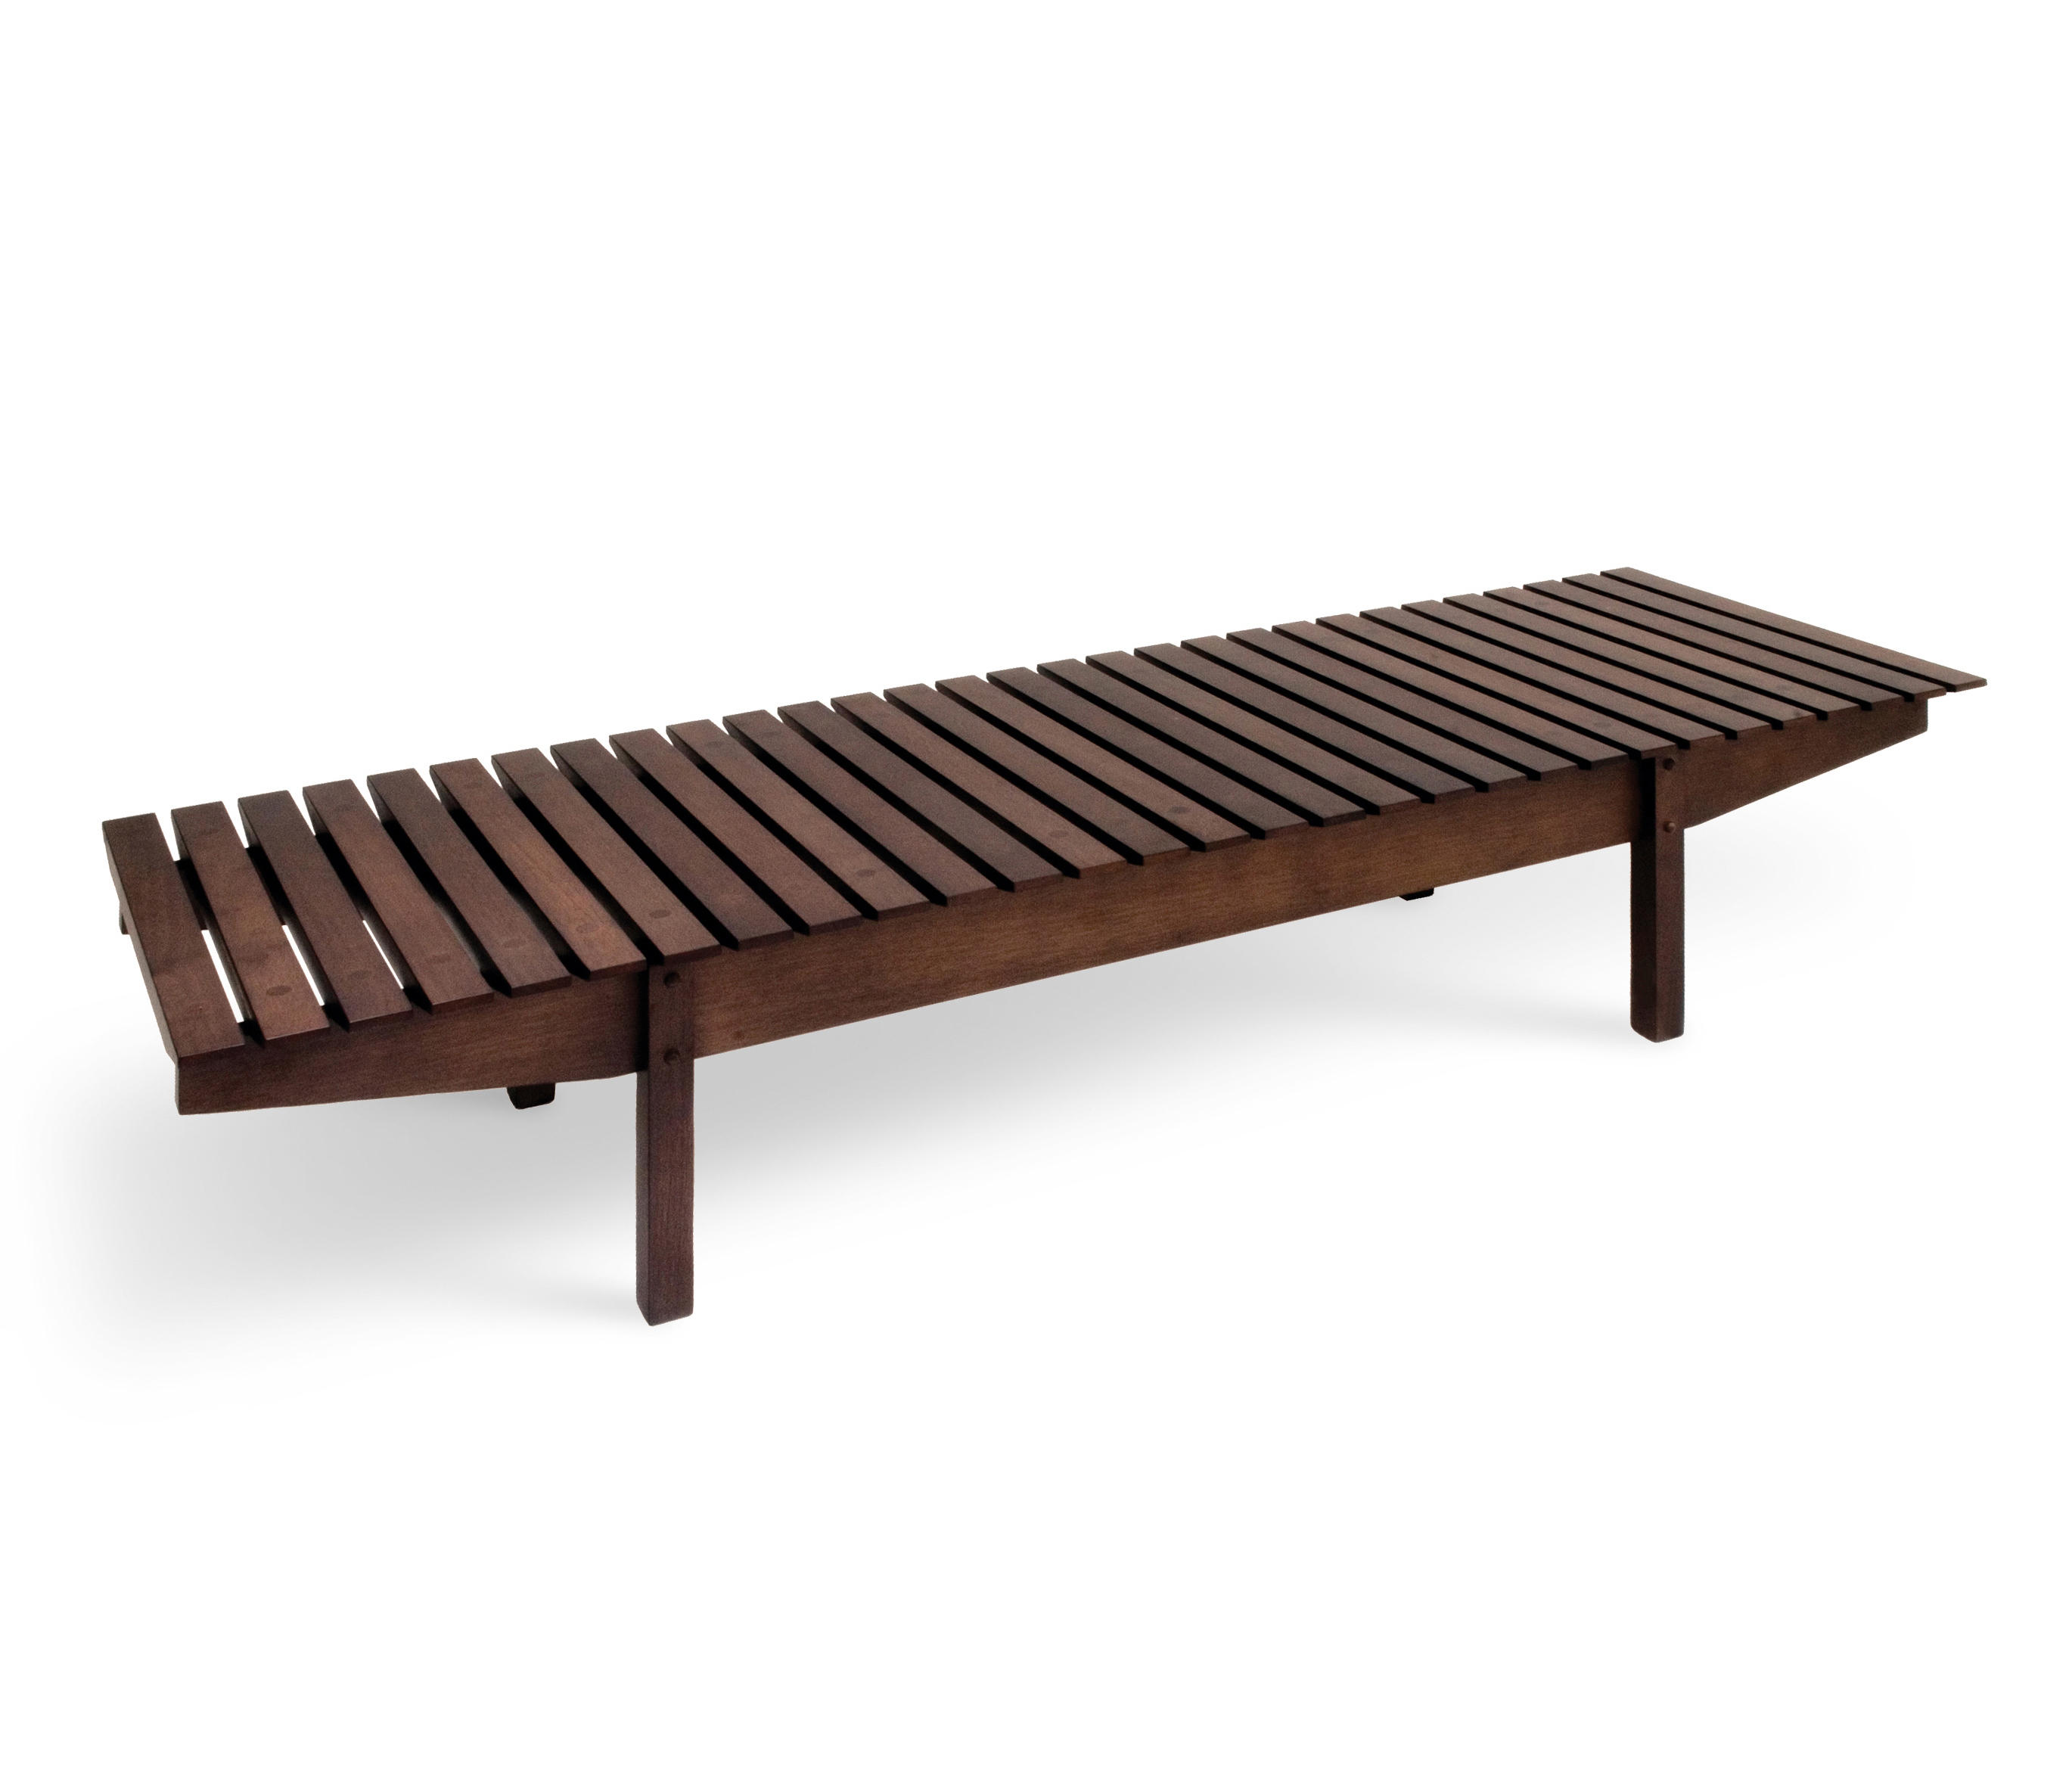 Mucki Bench By LinBrasil | Benches · Mucki Bench By LinBrasil | Benches ...